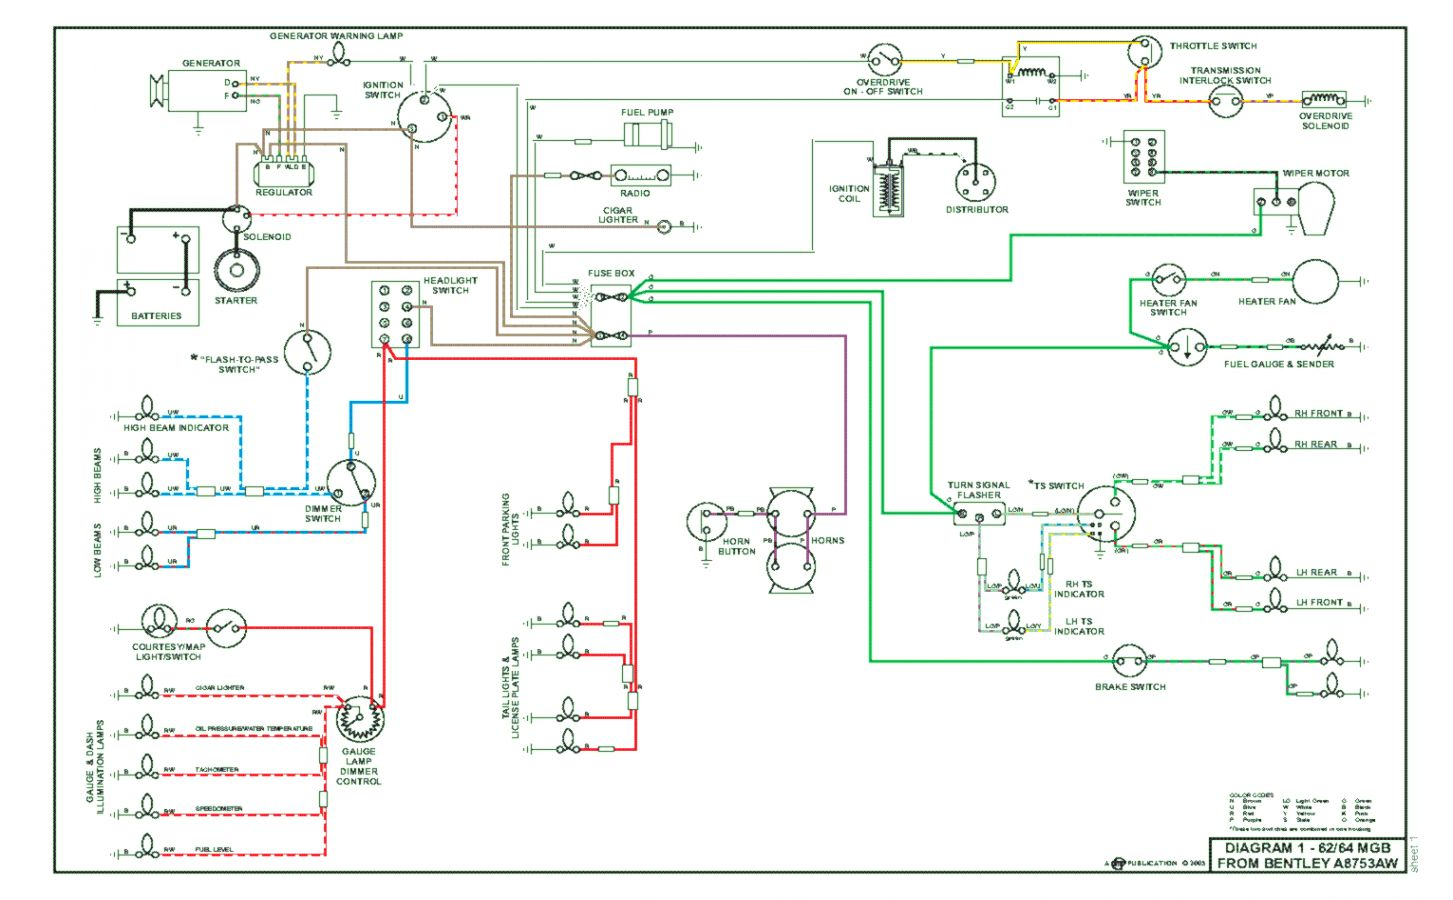 gem e2 wiring diagrams wiring diagram for you electric cars diagram wallpapers point gem cart wiring [ 1453 x 900 Pixel ]